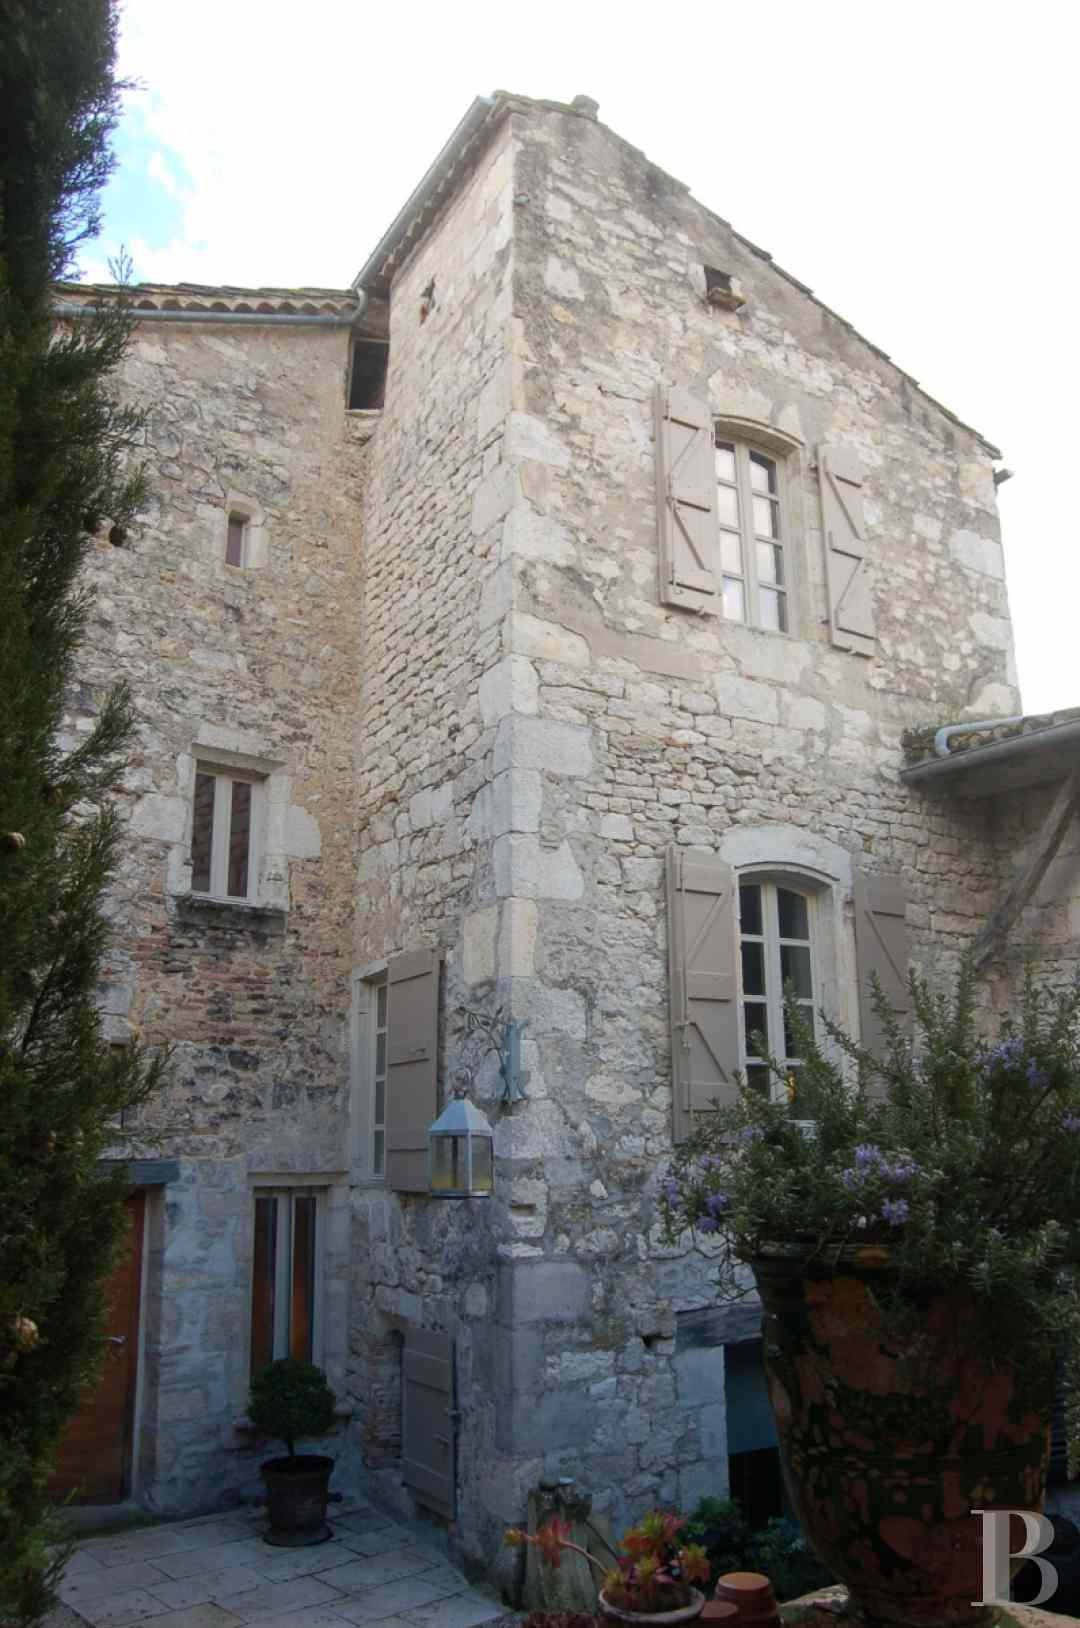 property for sale France midi pyrenees residences village - 1 zoom